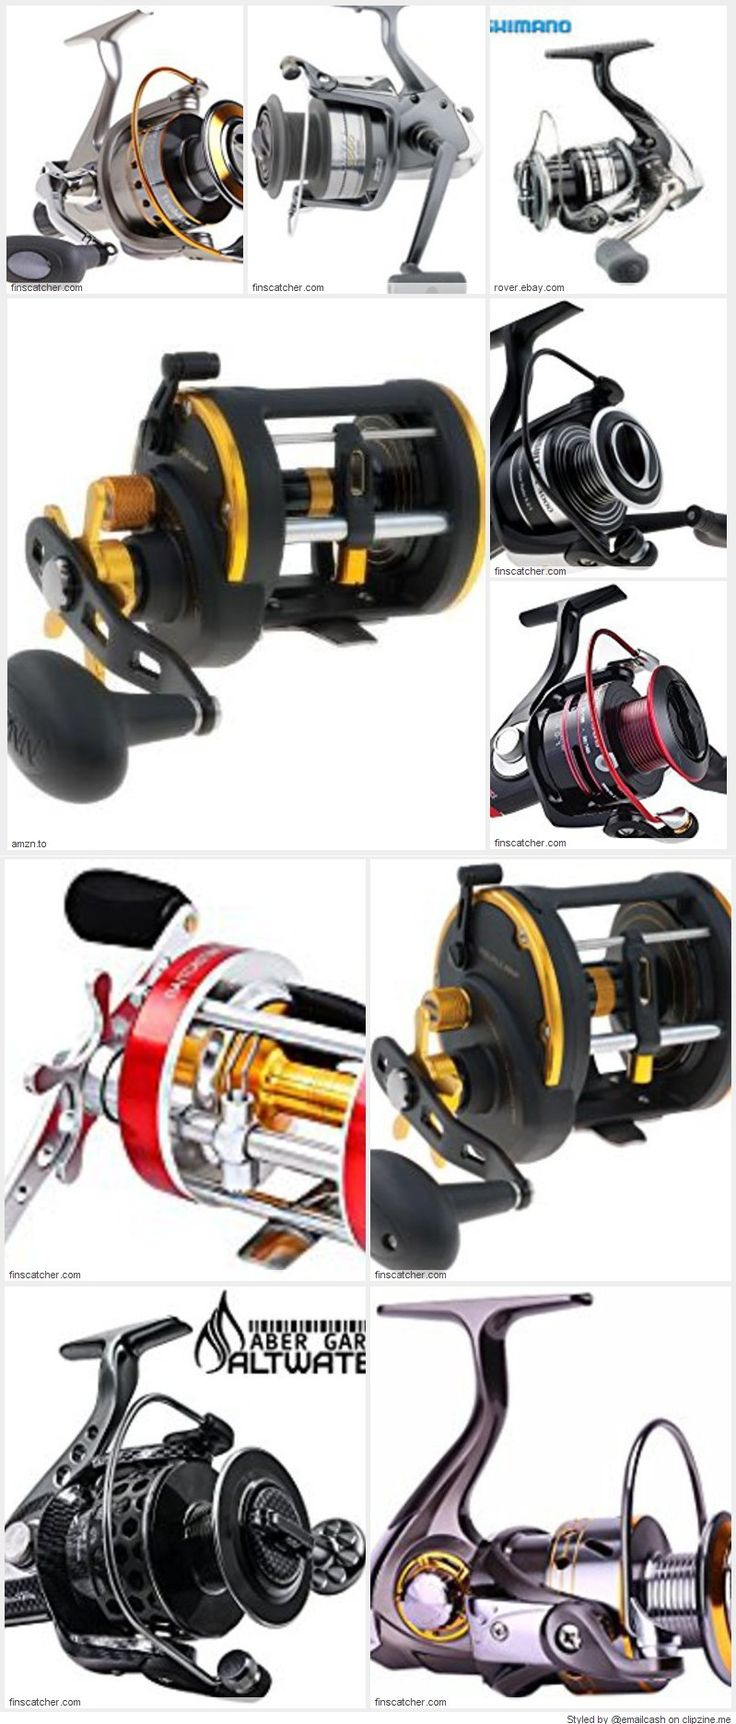 When shopping for the best saltwater fishing reels what do you look for? There are so many saltwater reels available that it might cause some confusion as to which one is the best. Most of the time, saltwater reels are classified as baitcasting reels or spinning reels. Then there are some anglers who prefer fly fishing and so there is also the saltwater fly fishing reel.